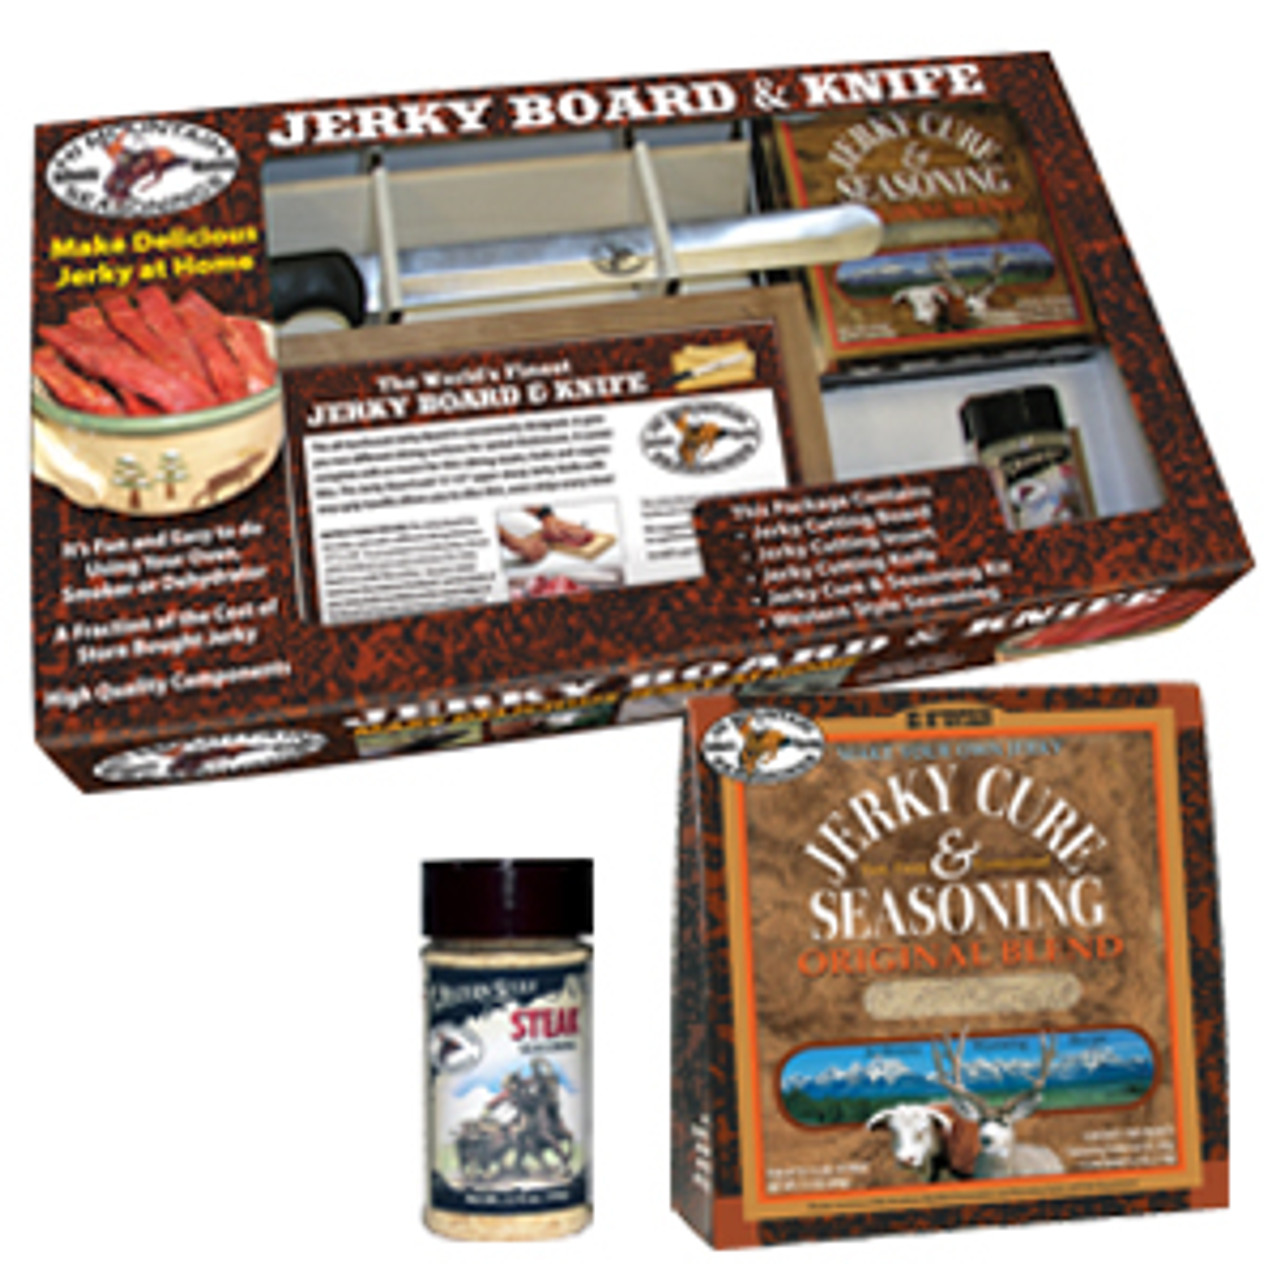 Original Jerky Board & Knife